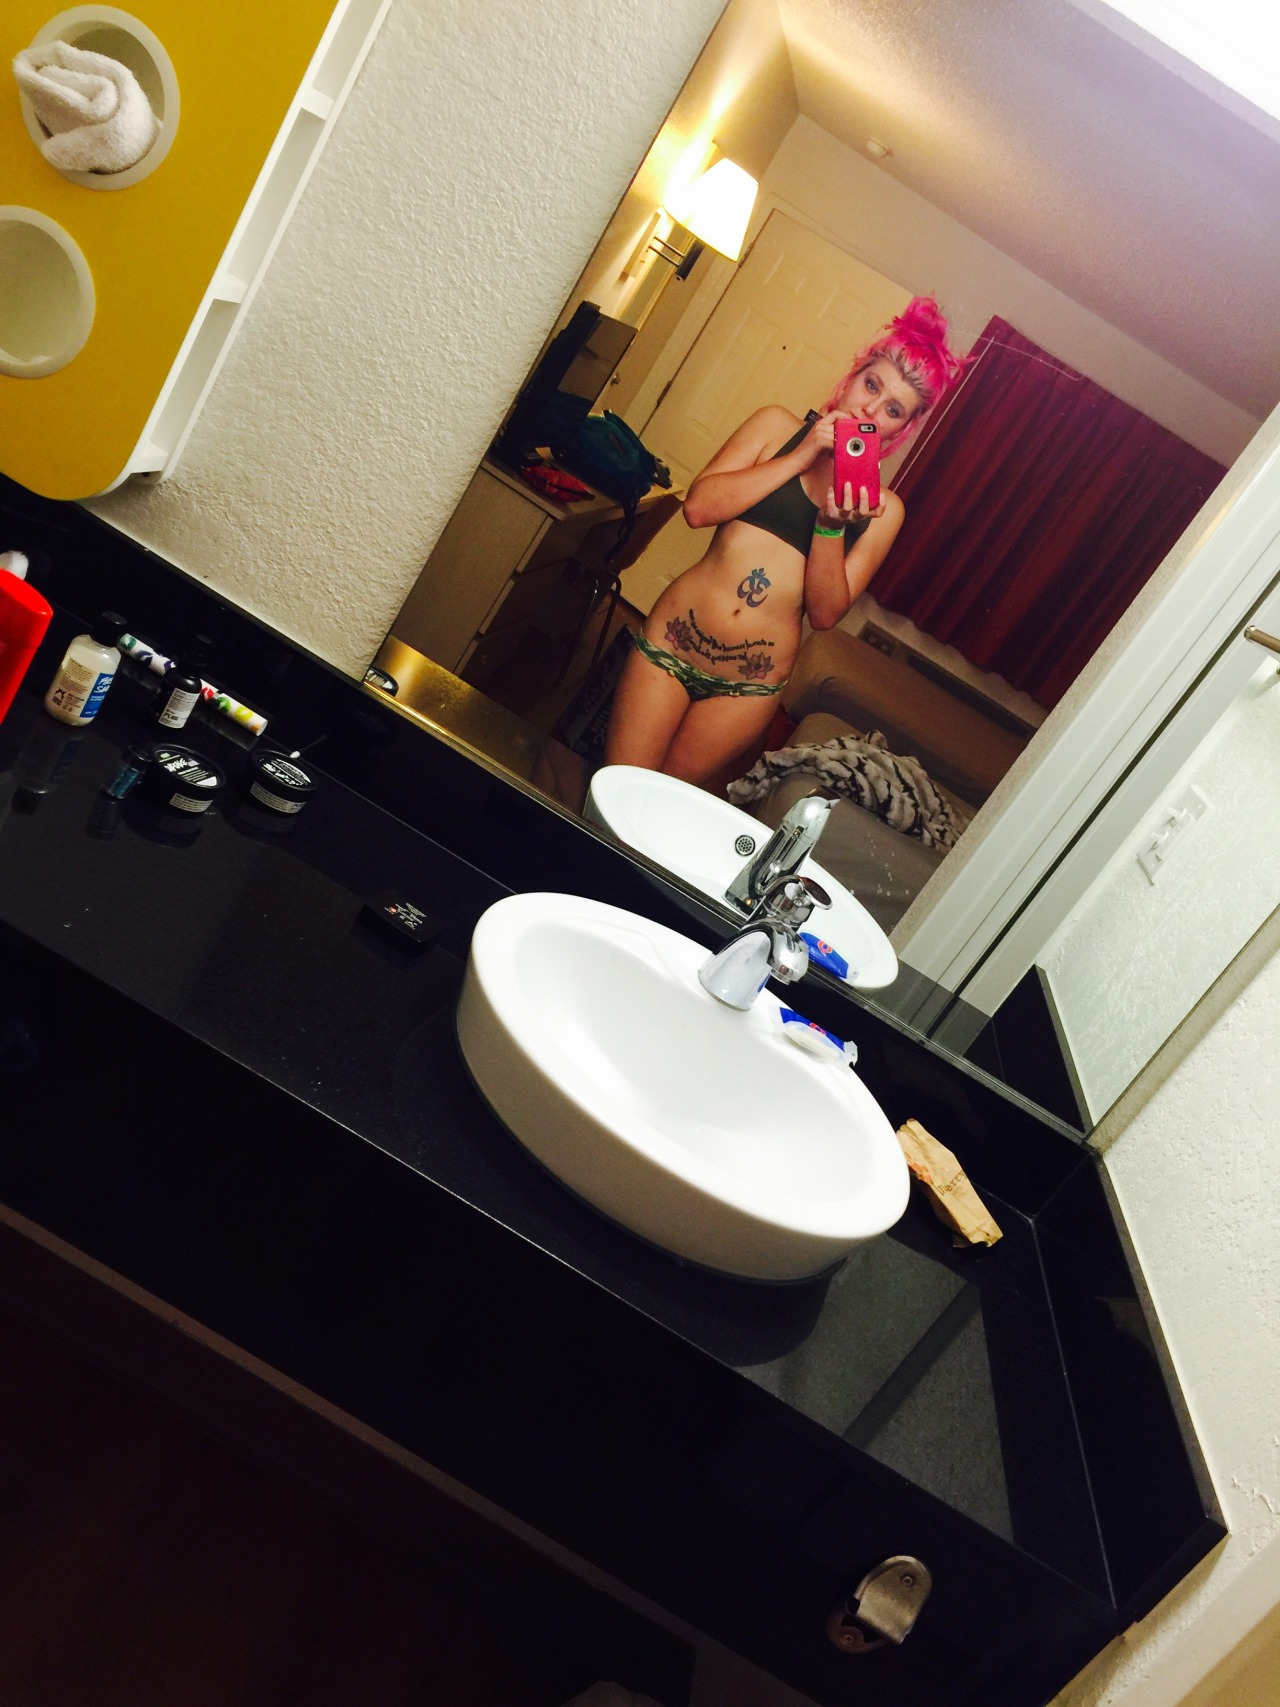 KittyKildare snapping some motel selfies for us